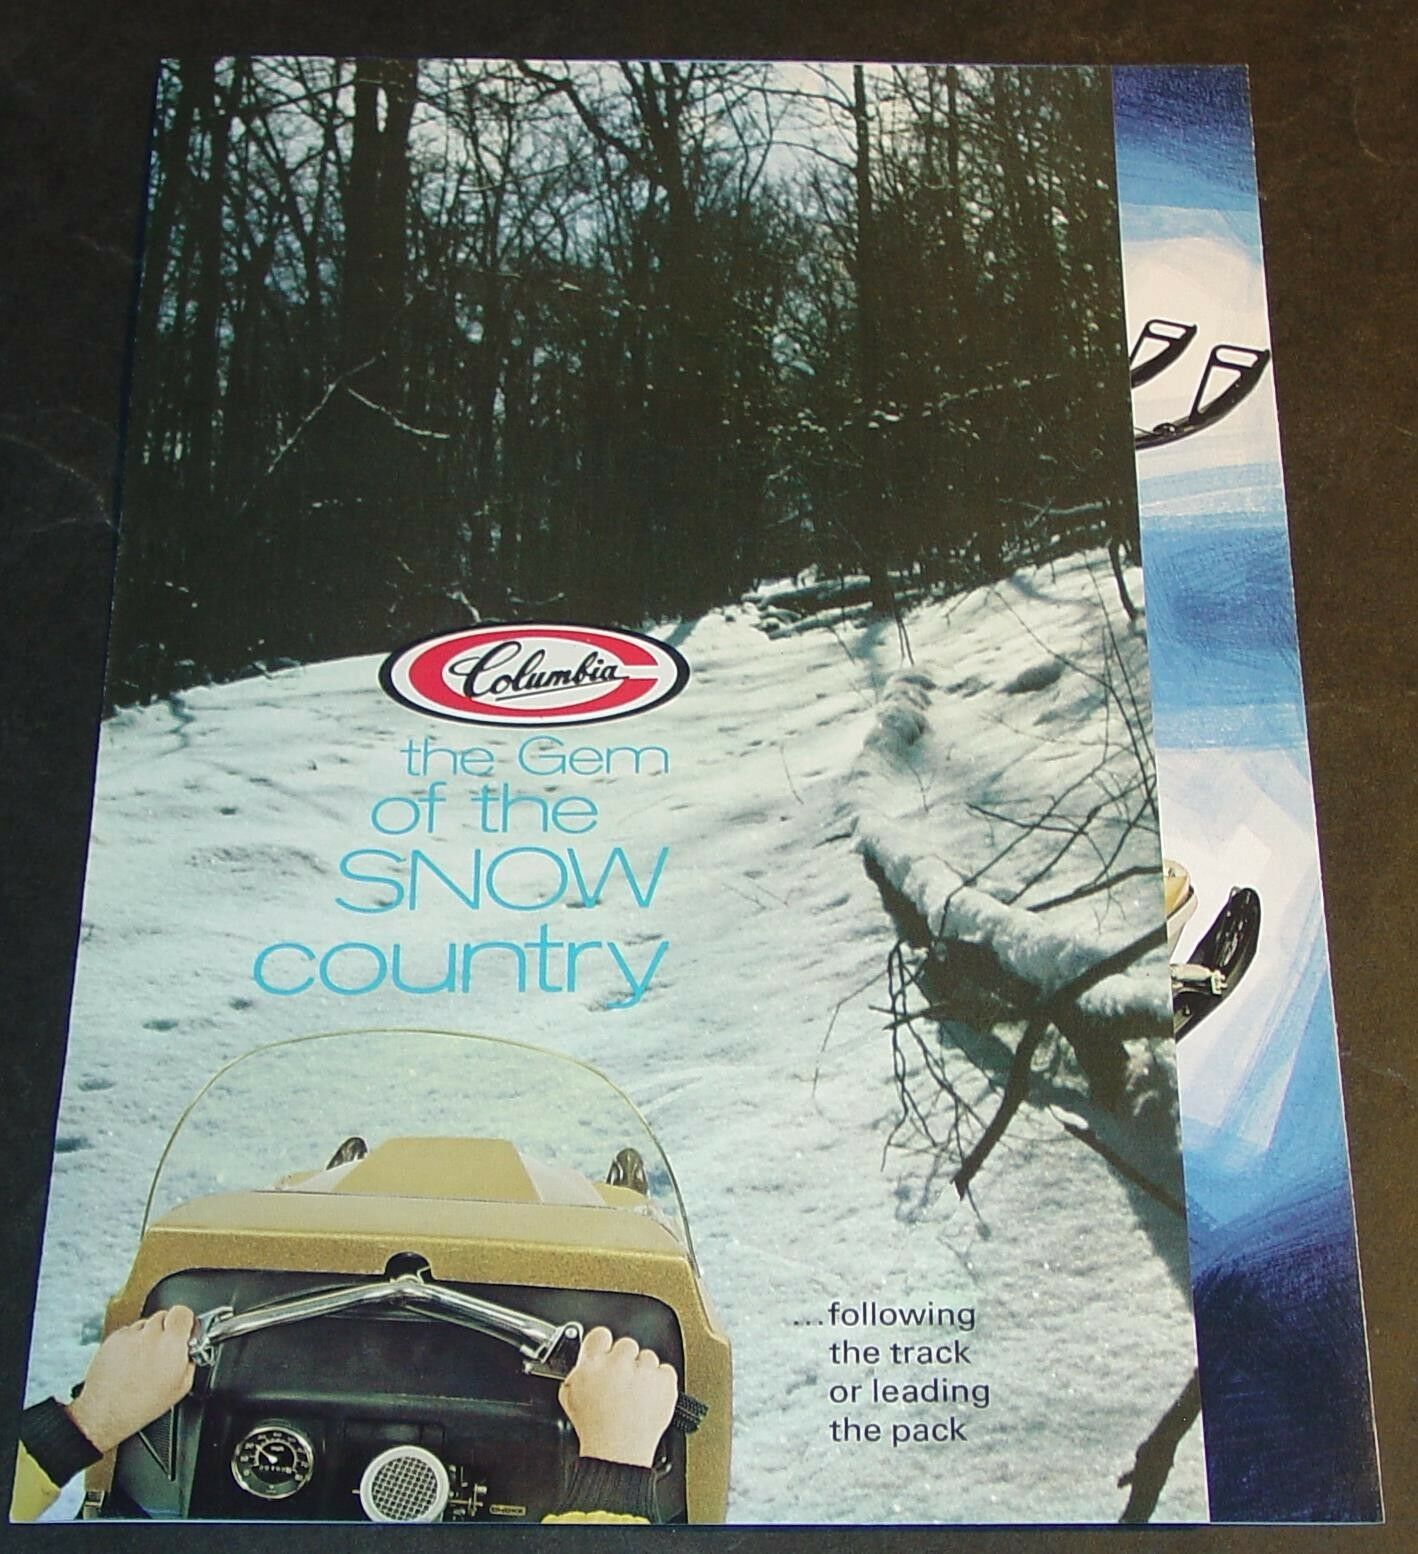 VINTAGE COLUMBIA SNOWMOBILE SALES BROCHURE VERY  NICE++  (761)  factory outlet online discount sale